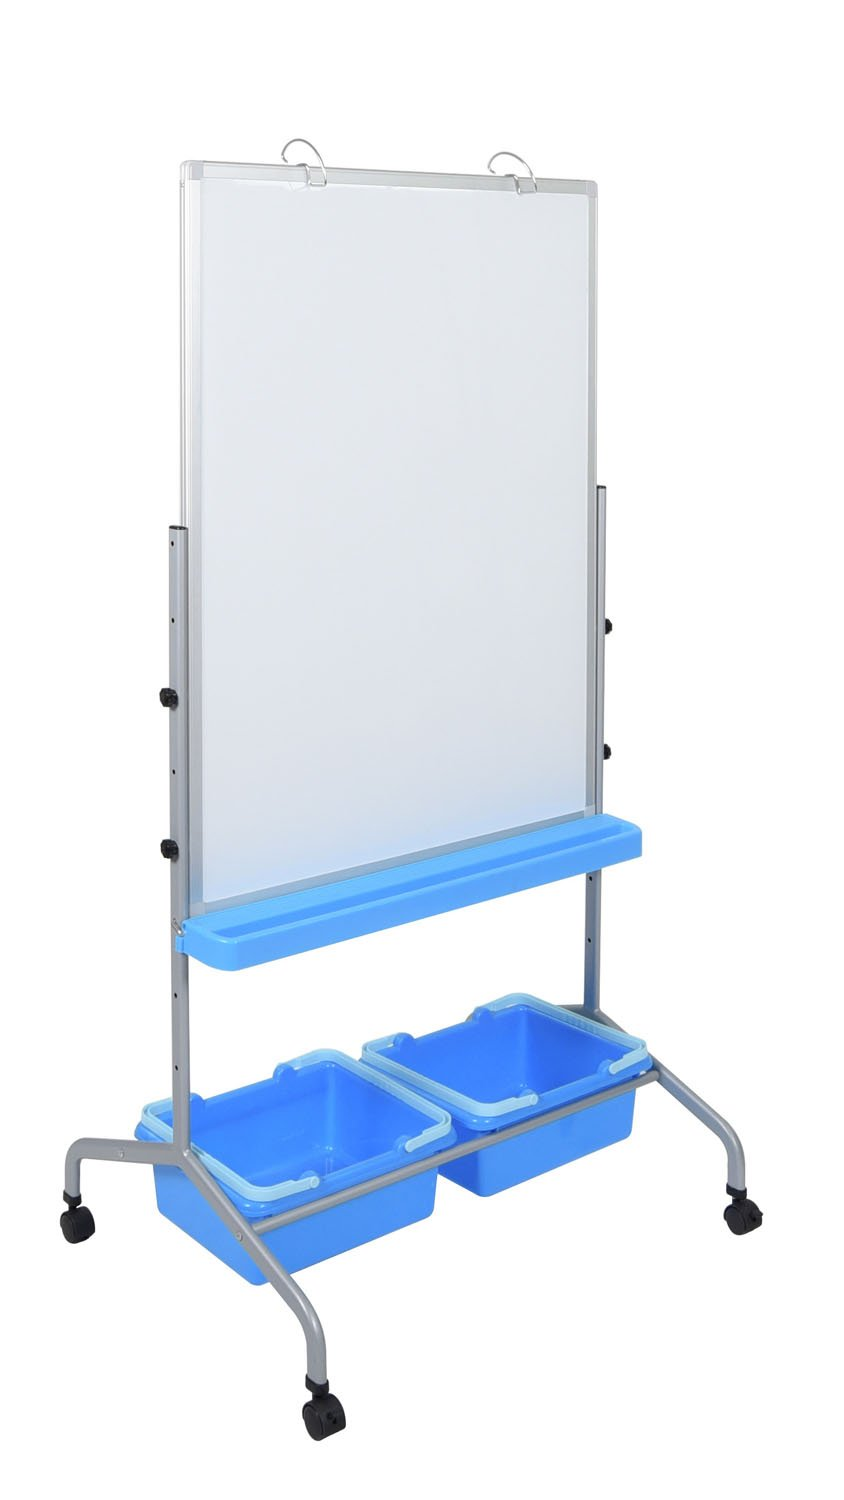 Luxor L330 Classroom Chart Stand with Storage Bins by Luxor